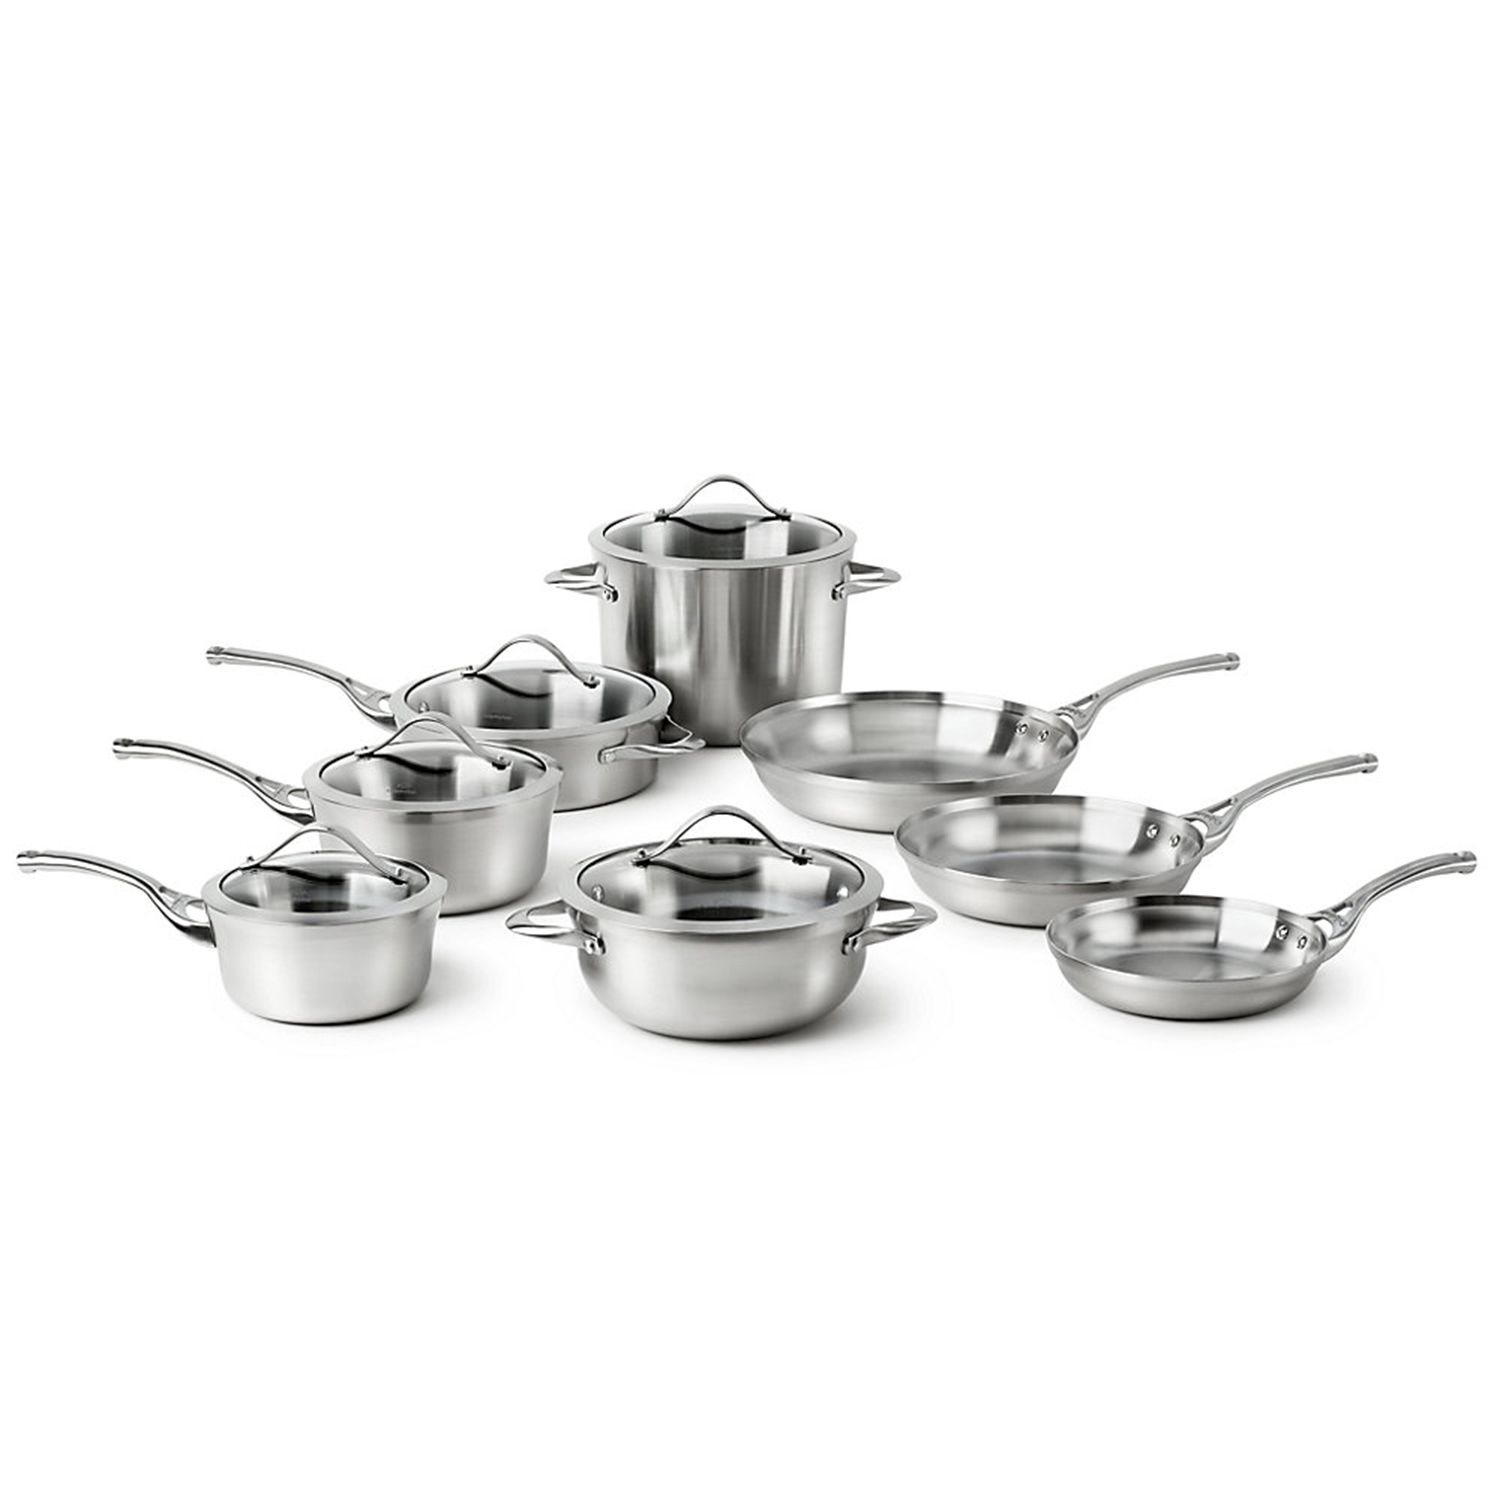 calphalon stainless 13pc stainless steel cookware set